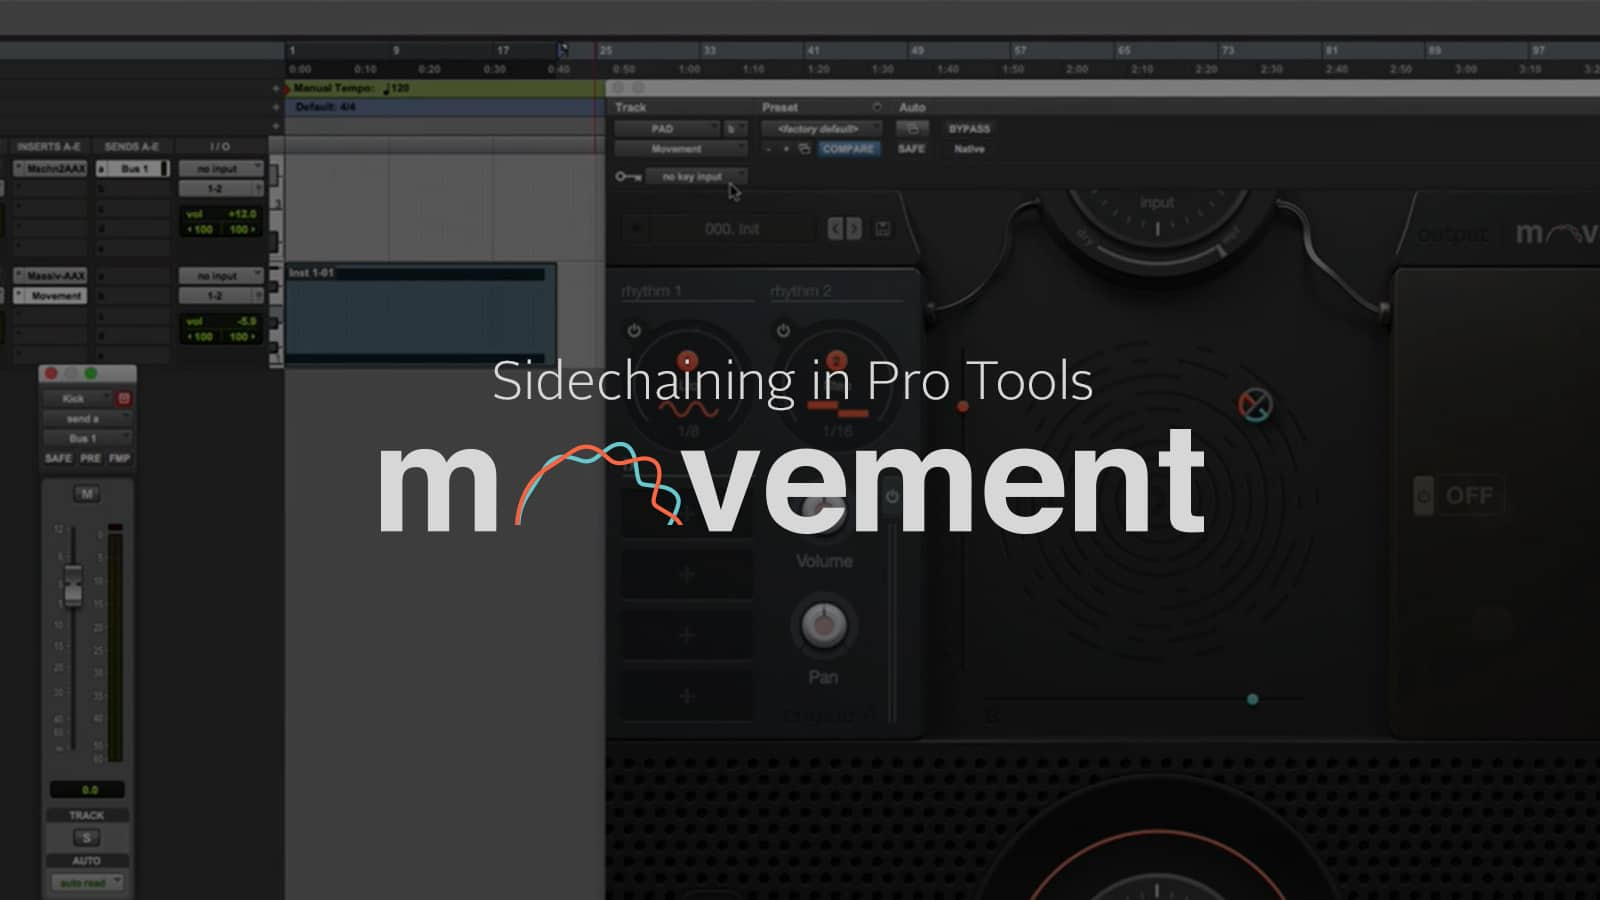 sidechaining with pro tools_banner image